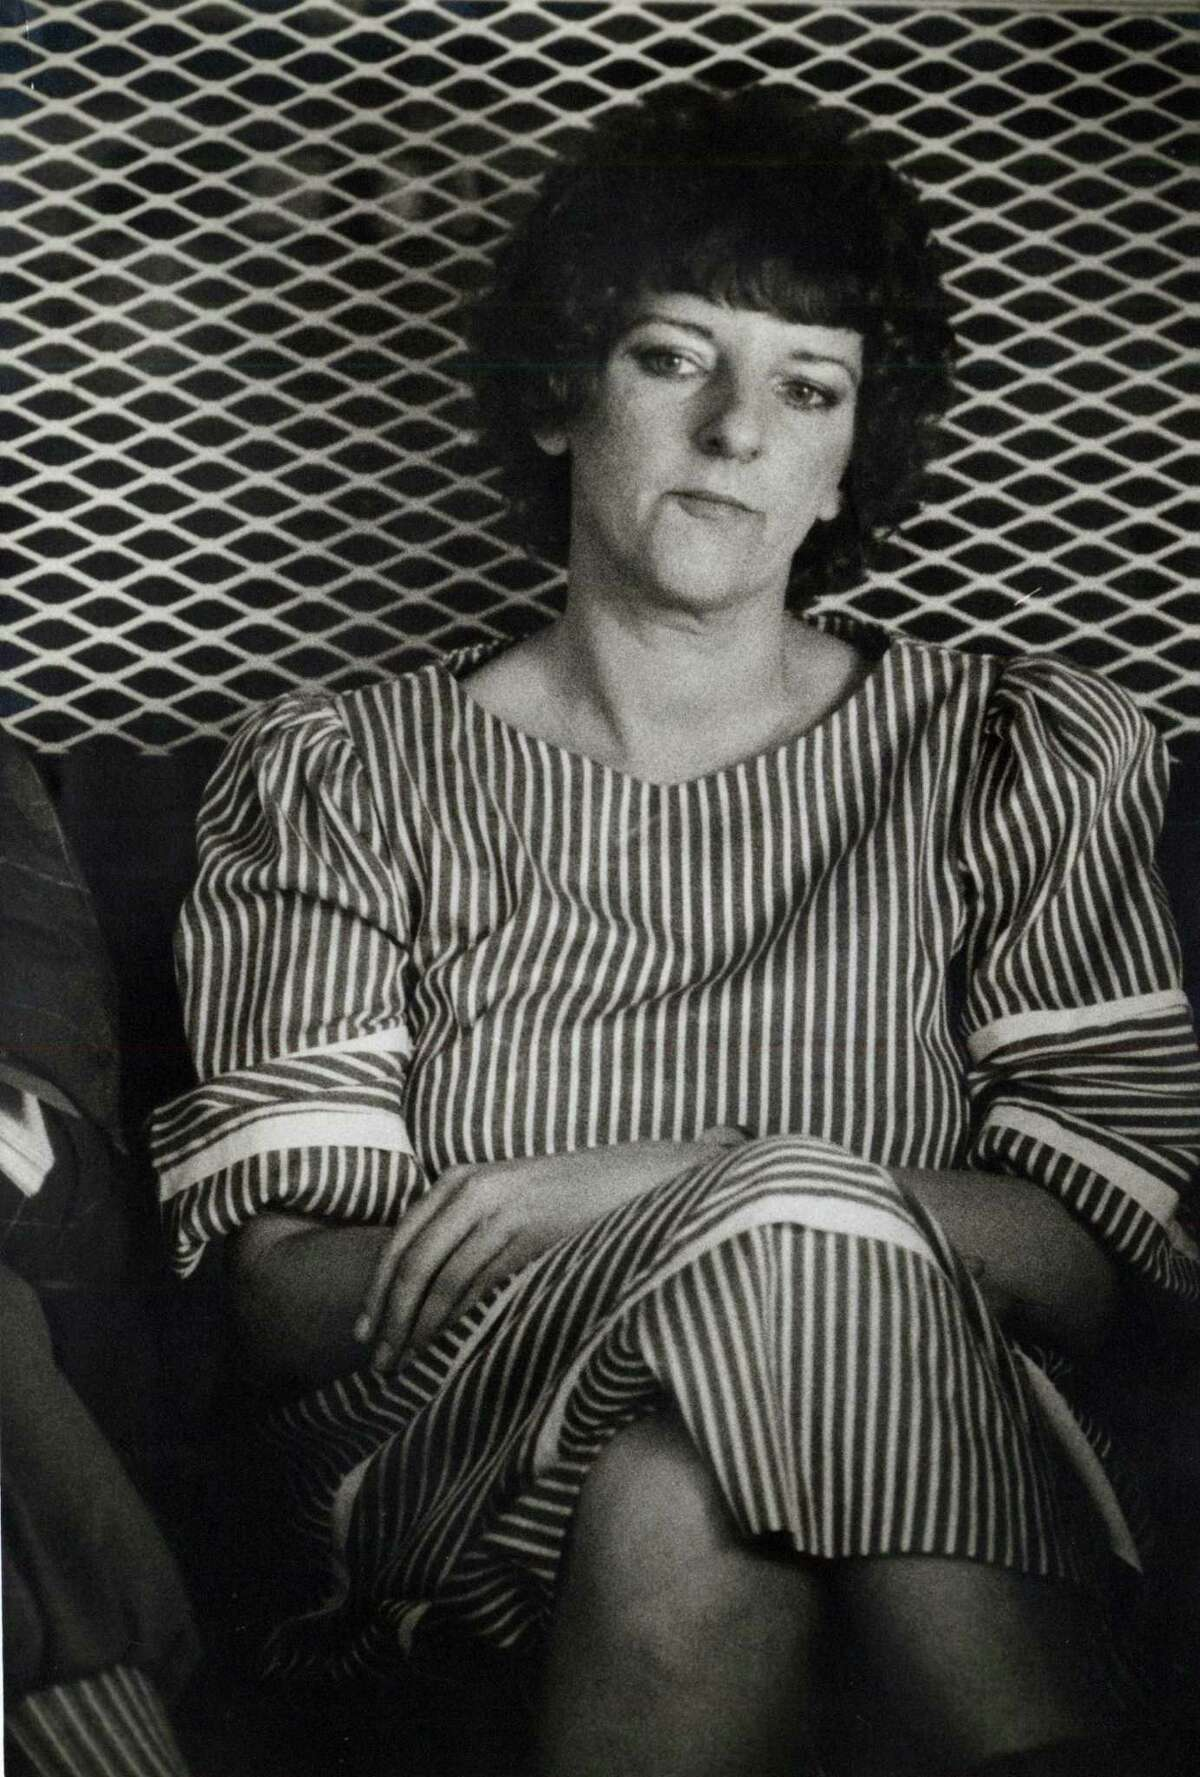 Genene Jones, a former nurse at hospitals in San Antonio and Kerrville who is shown in this 1984 photo, is serving a 99-year sentence for killing Chelsea McClellan, who was 15 months old when she was given a fatal overdose of muscle relaxers in 1982.